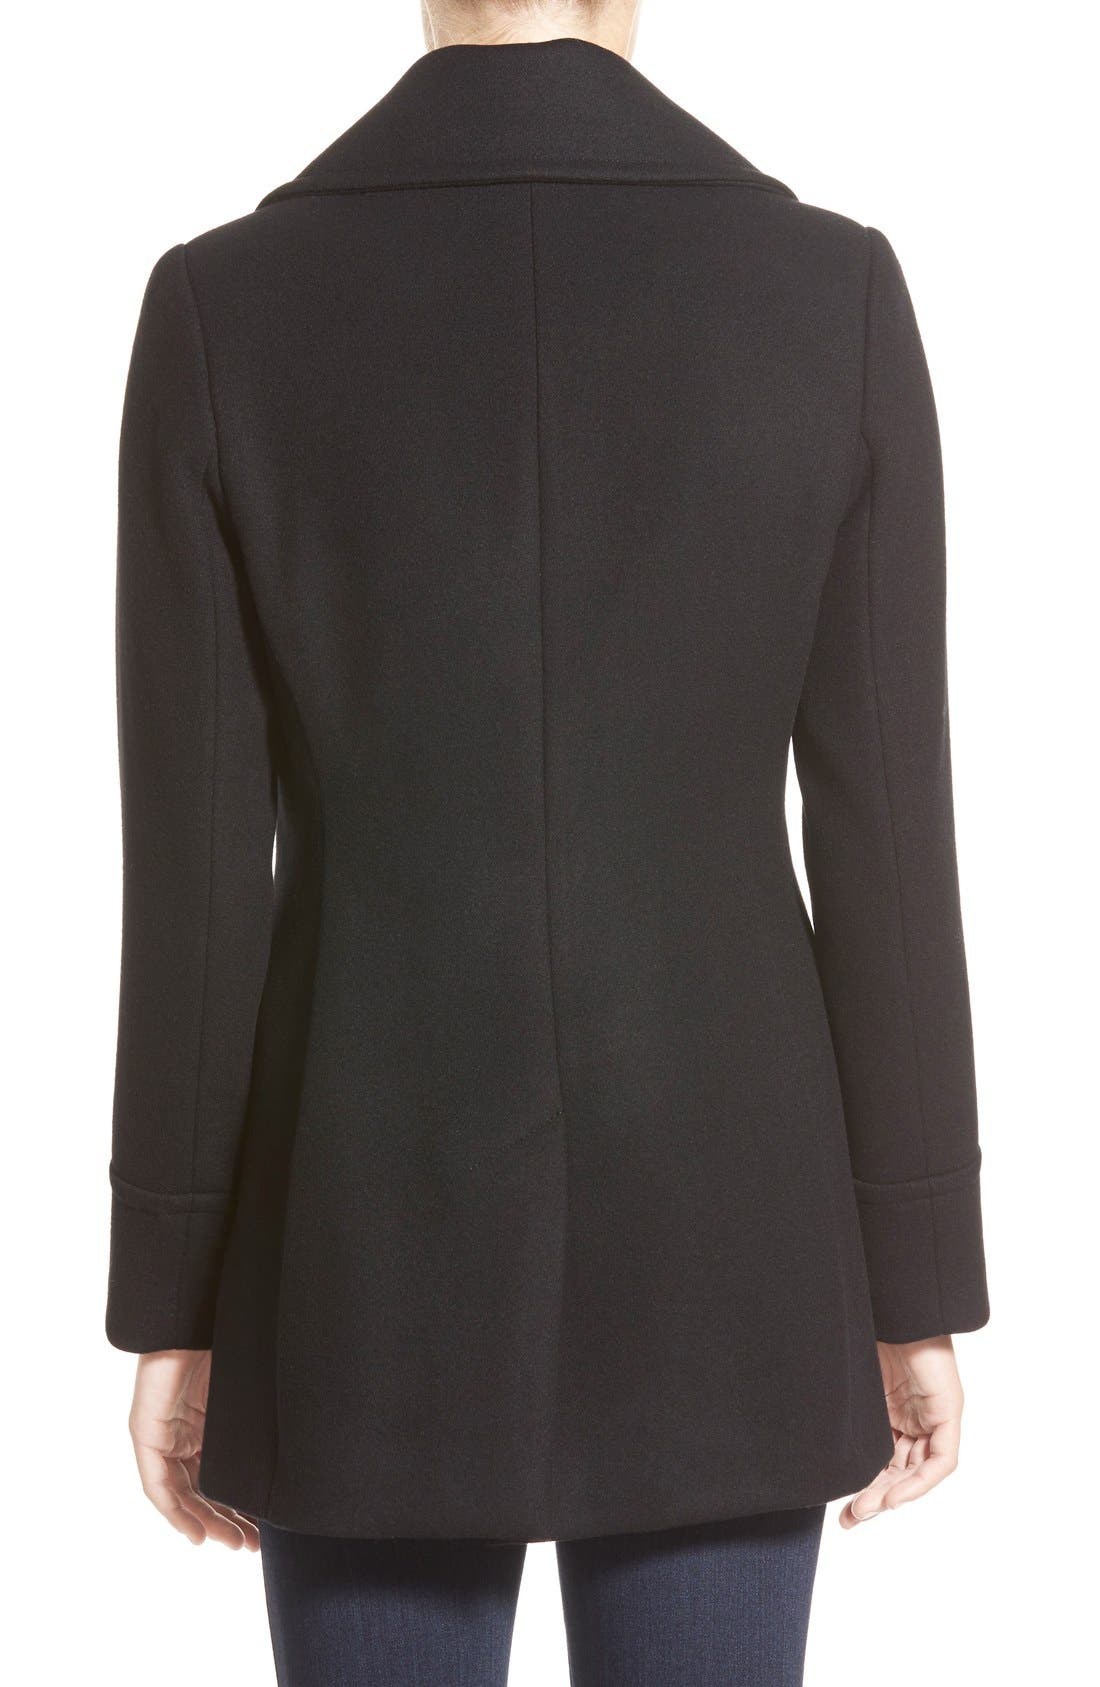 Alternate Image 2  - Pendleton'Cascades' Double Breasted Wool Blend Peacoat